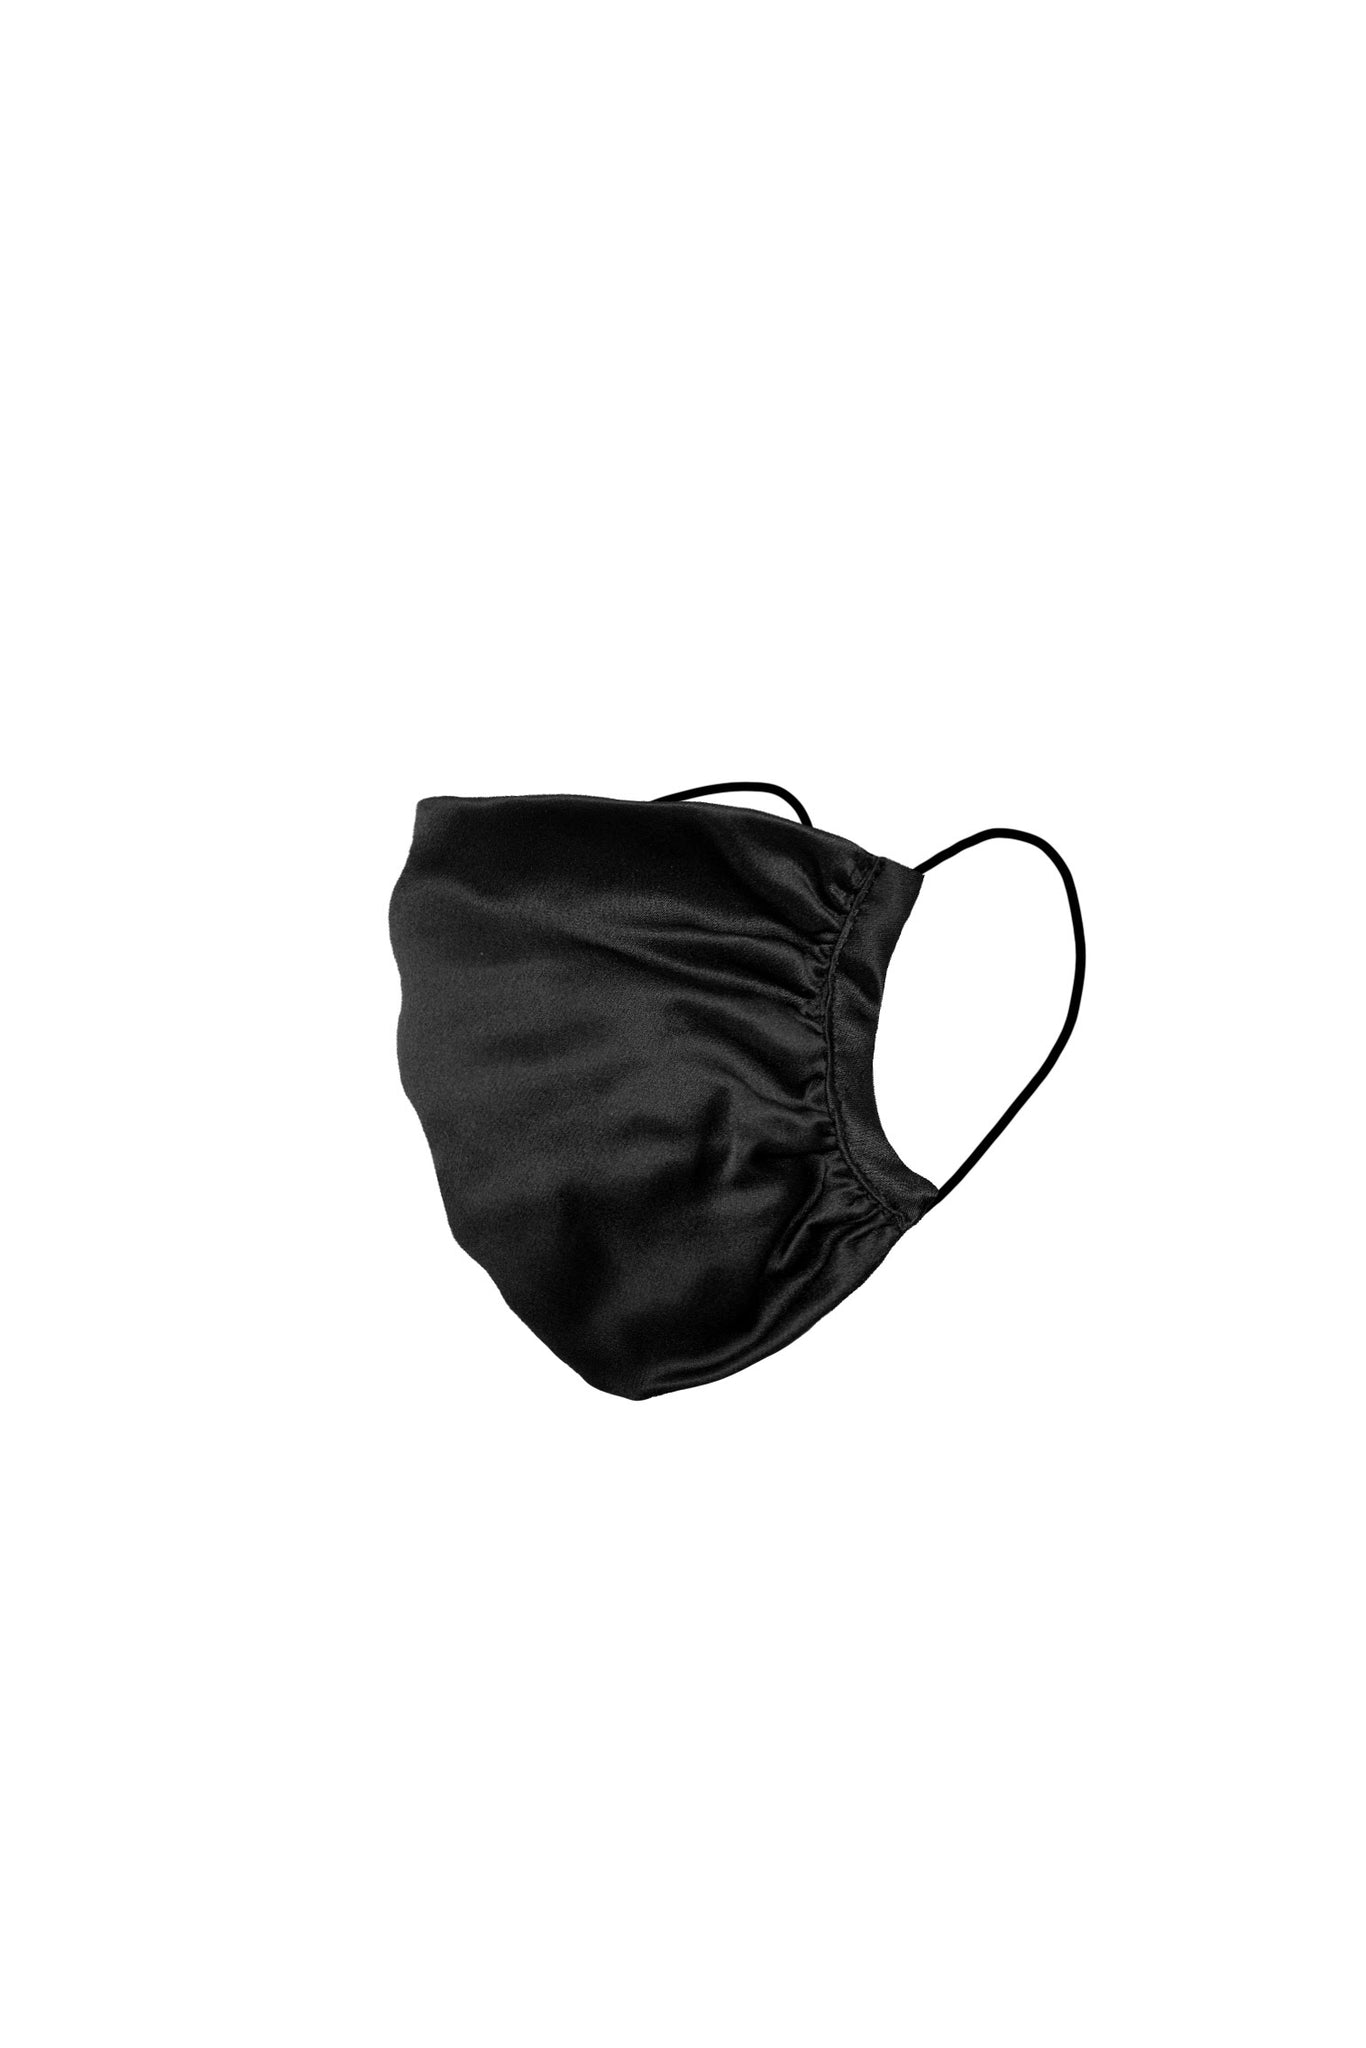 KES Peace Covering - Black/Magnolia Silk (2 in 1 Pack)